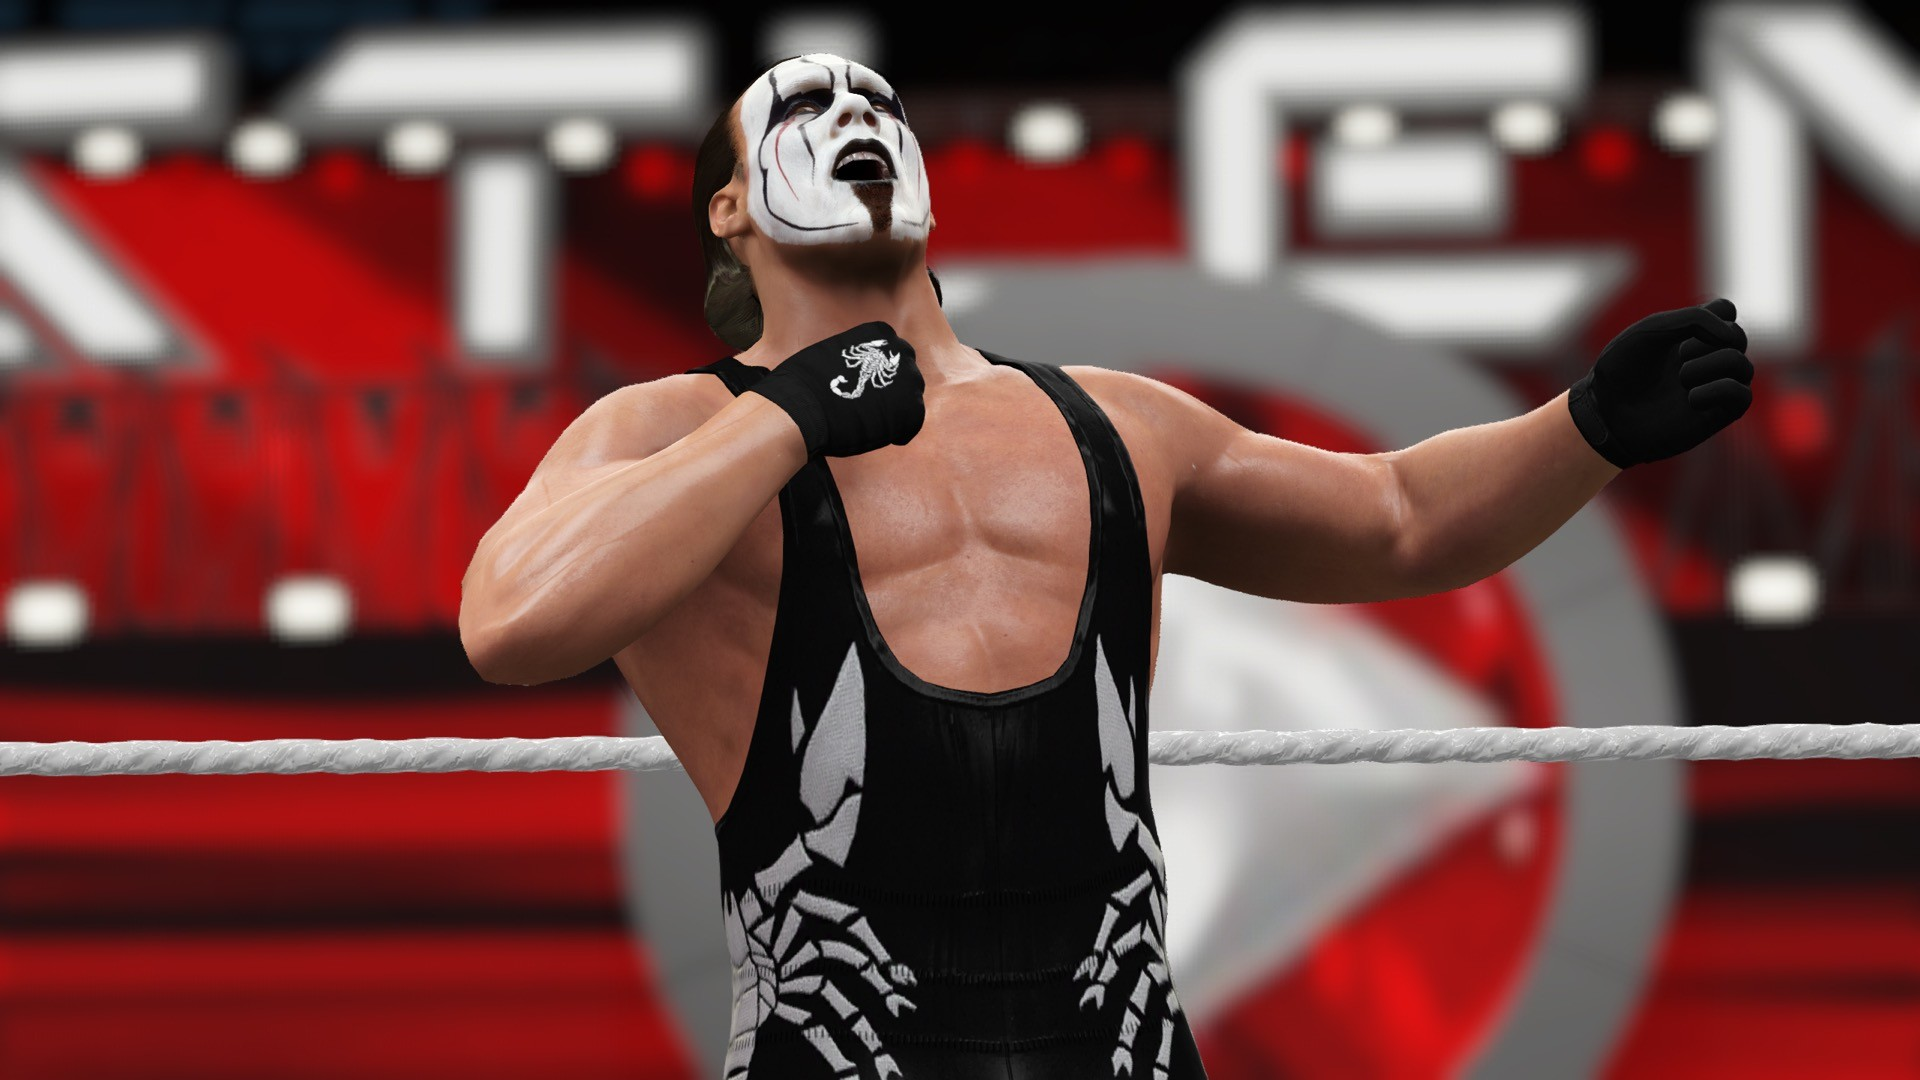 1920x1080 WWE 2K16 Celebrates Sting's Hall of Fame Induction